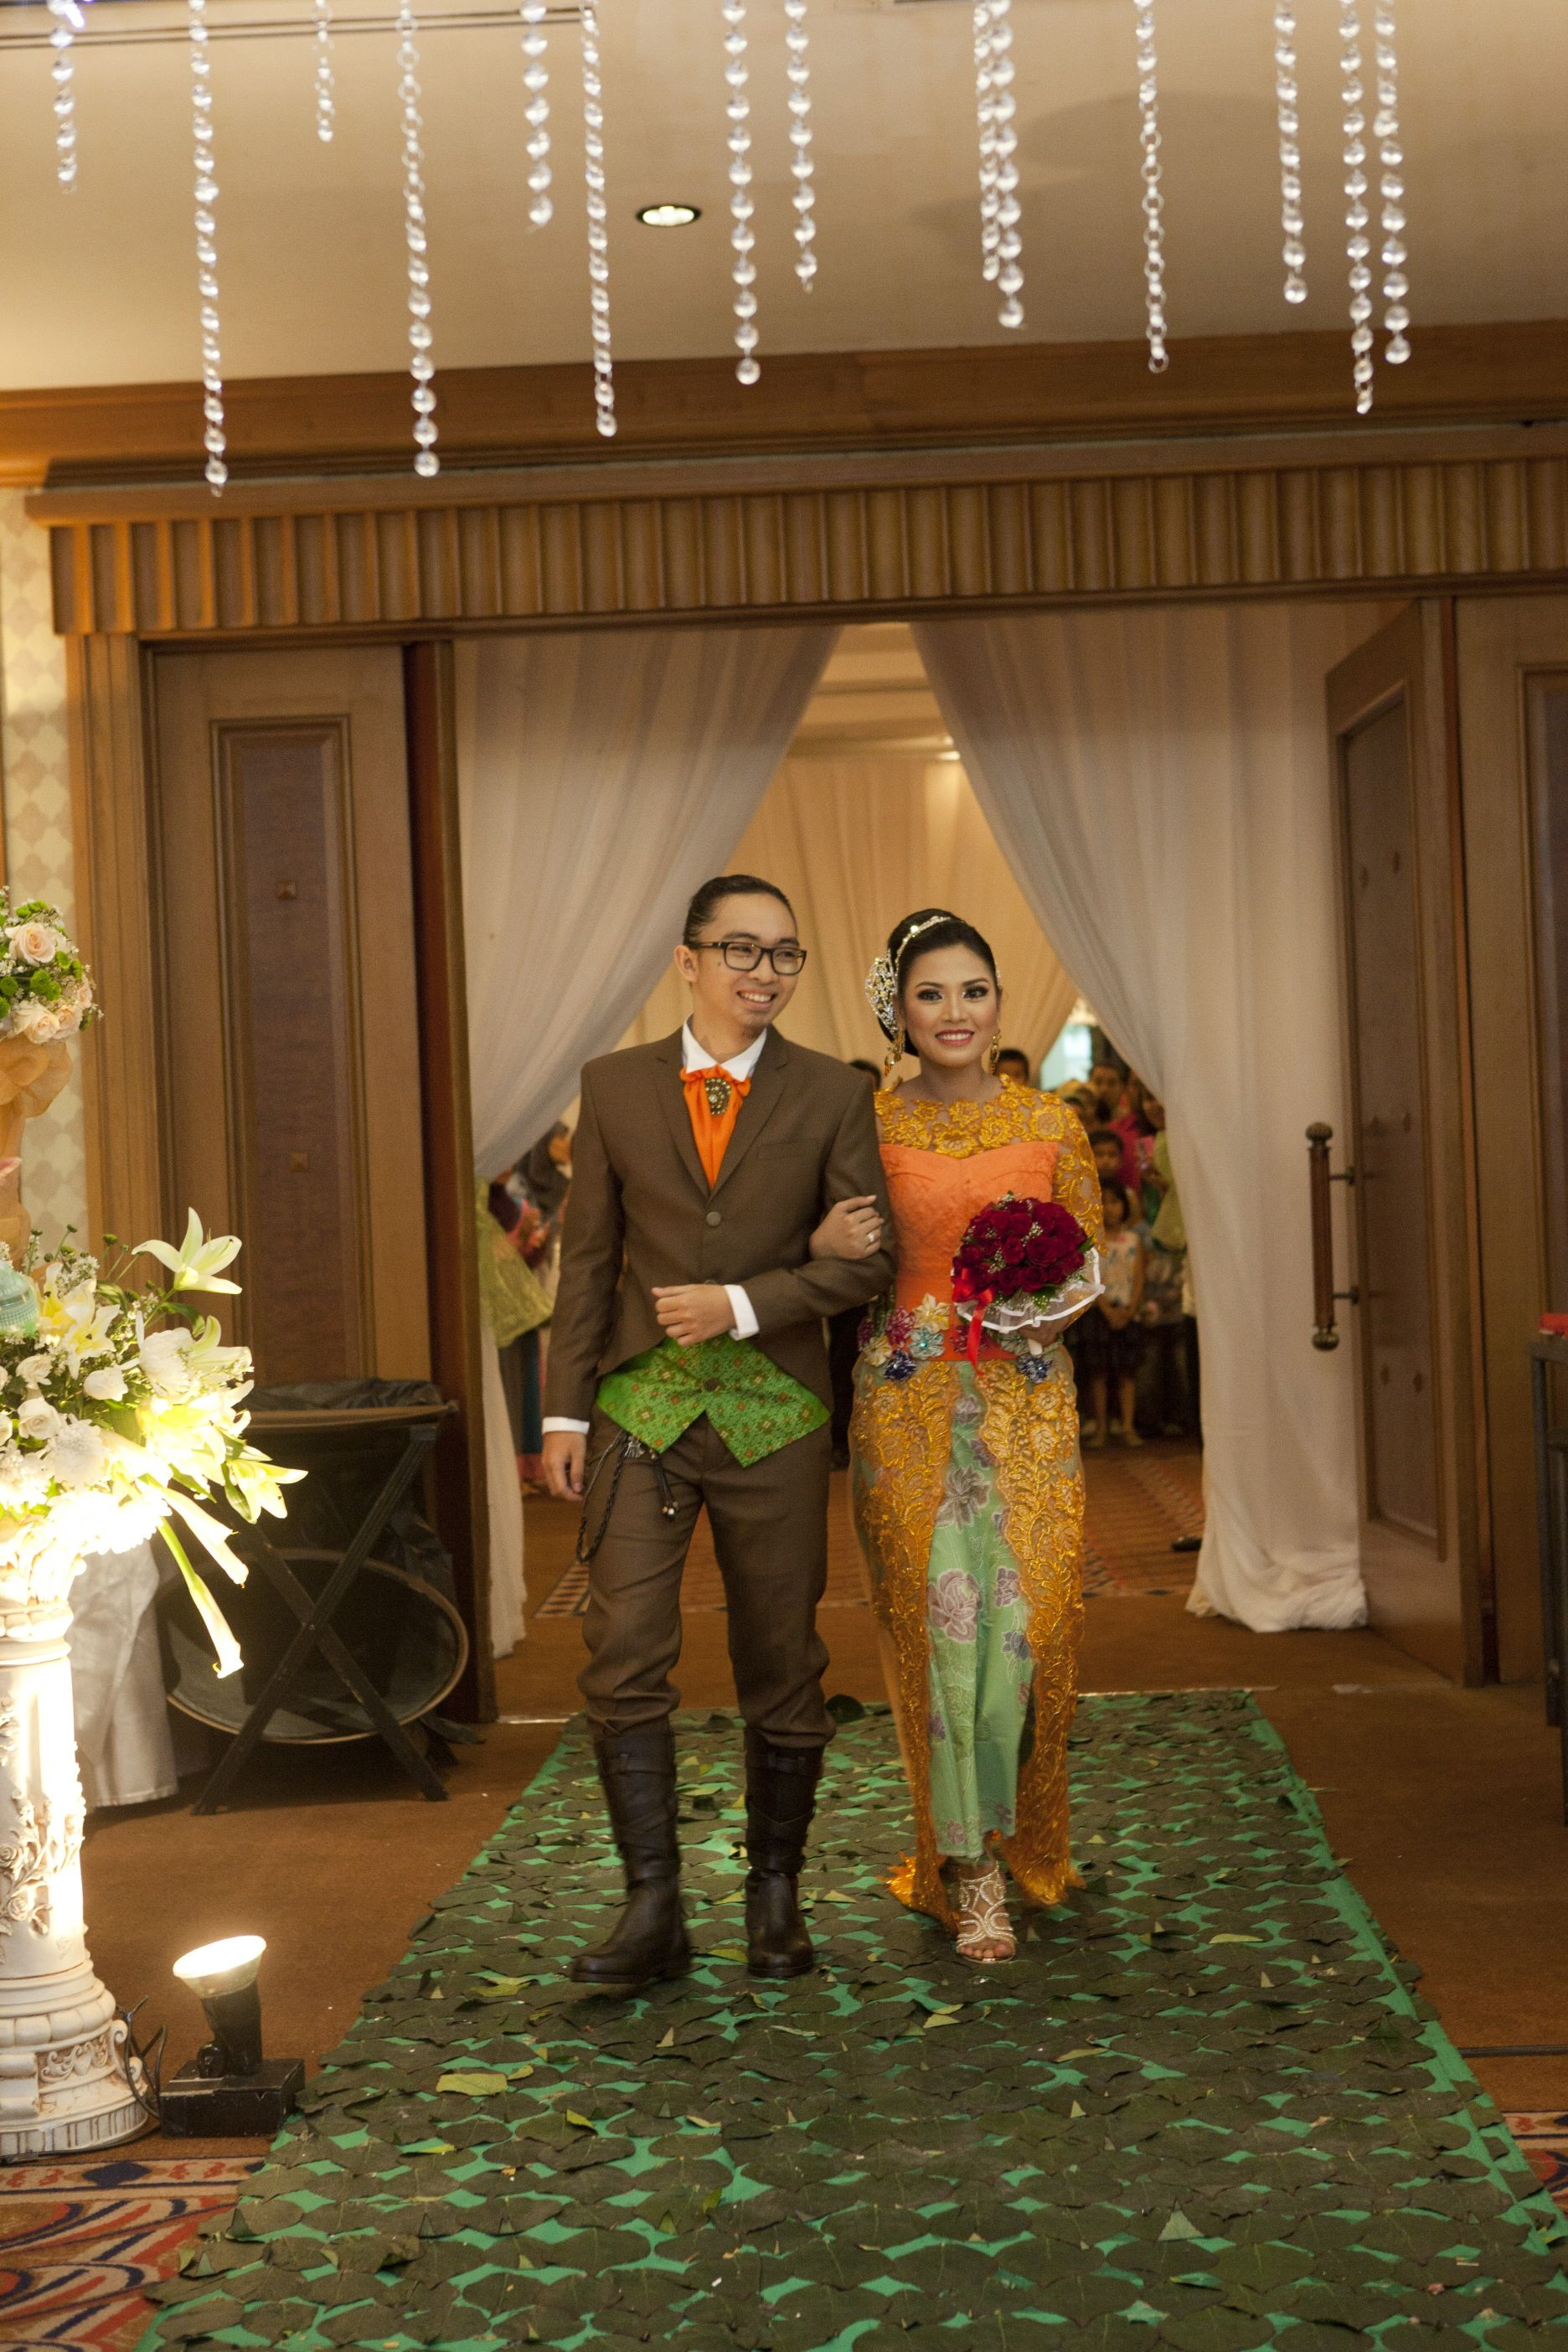 Kebaya dress and suits by Crazy No Play by fei for Rama & Amanda wedding day